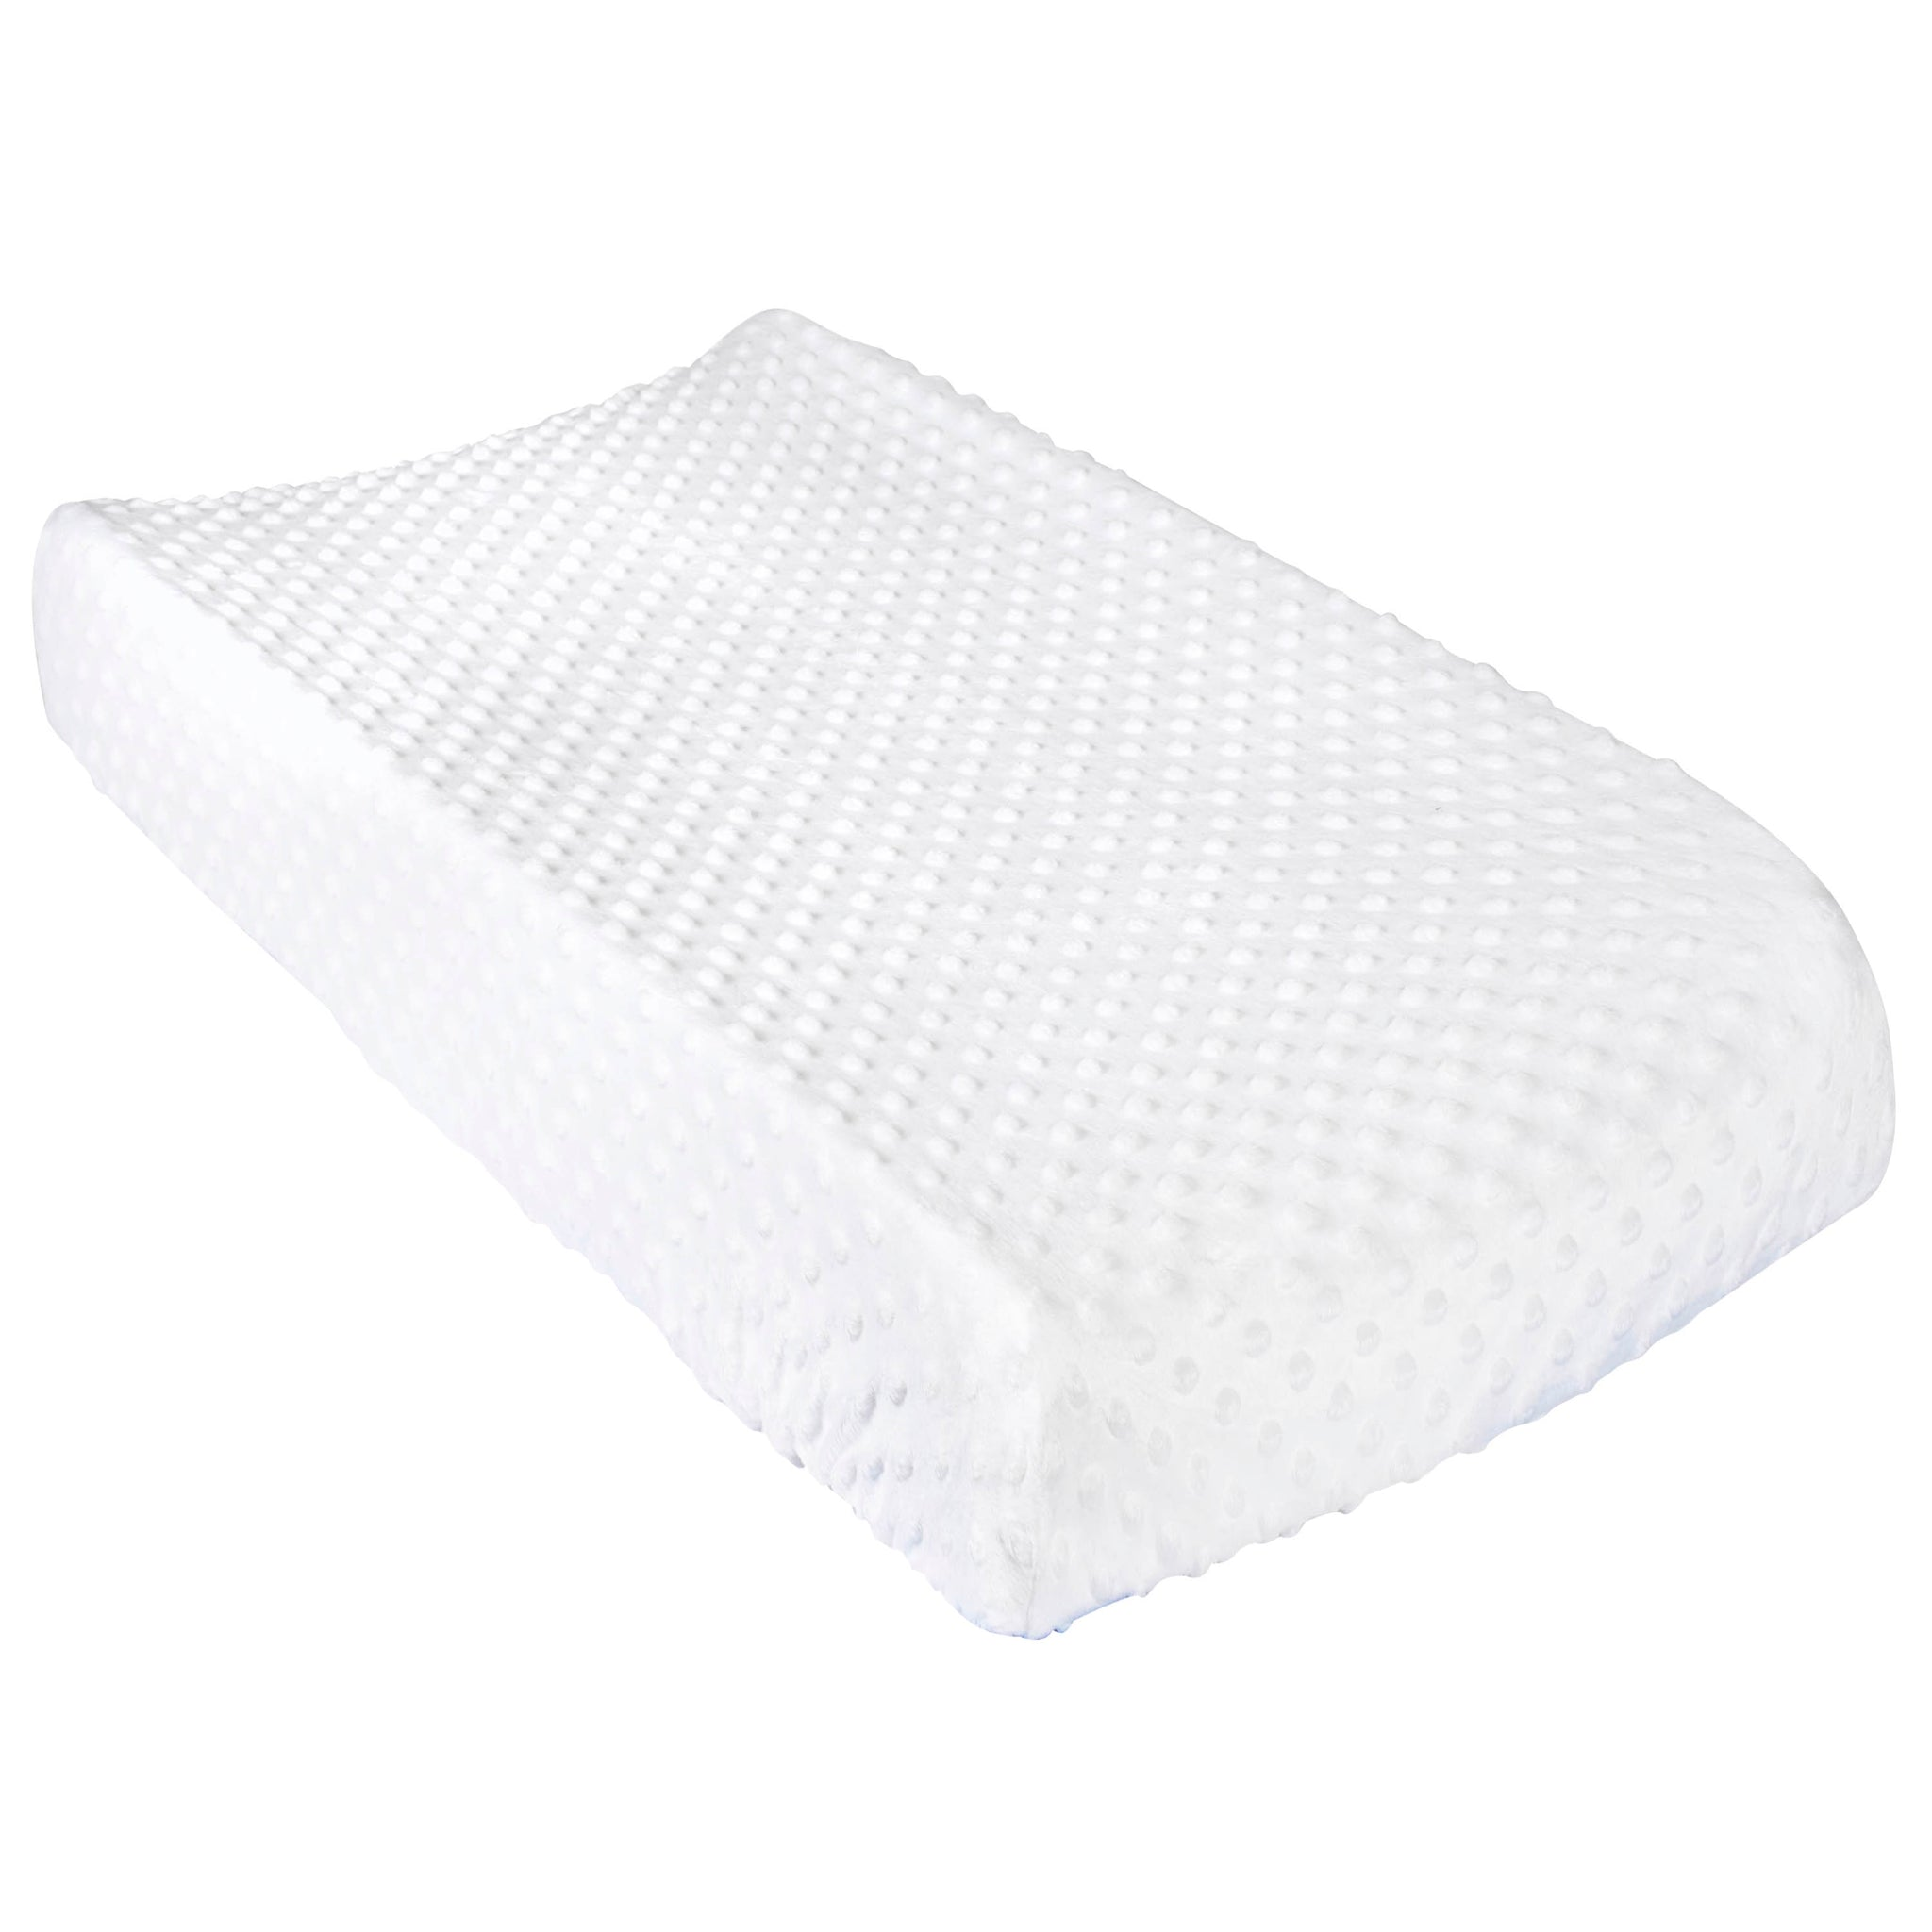 Baby Neutral White Changing Pad Cover-Gerber Childrenswear Wholesale